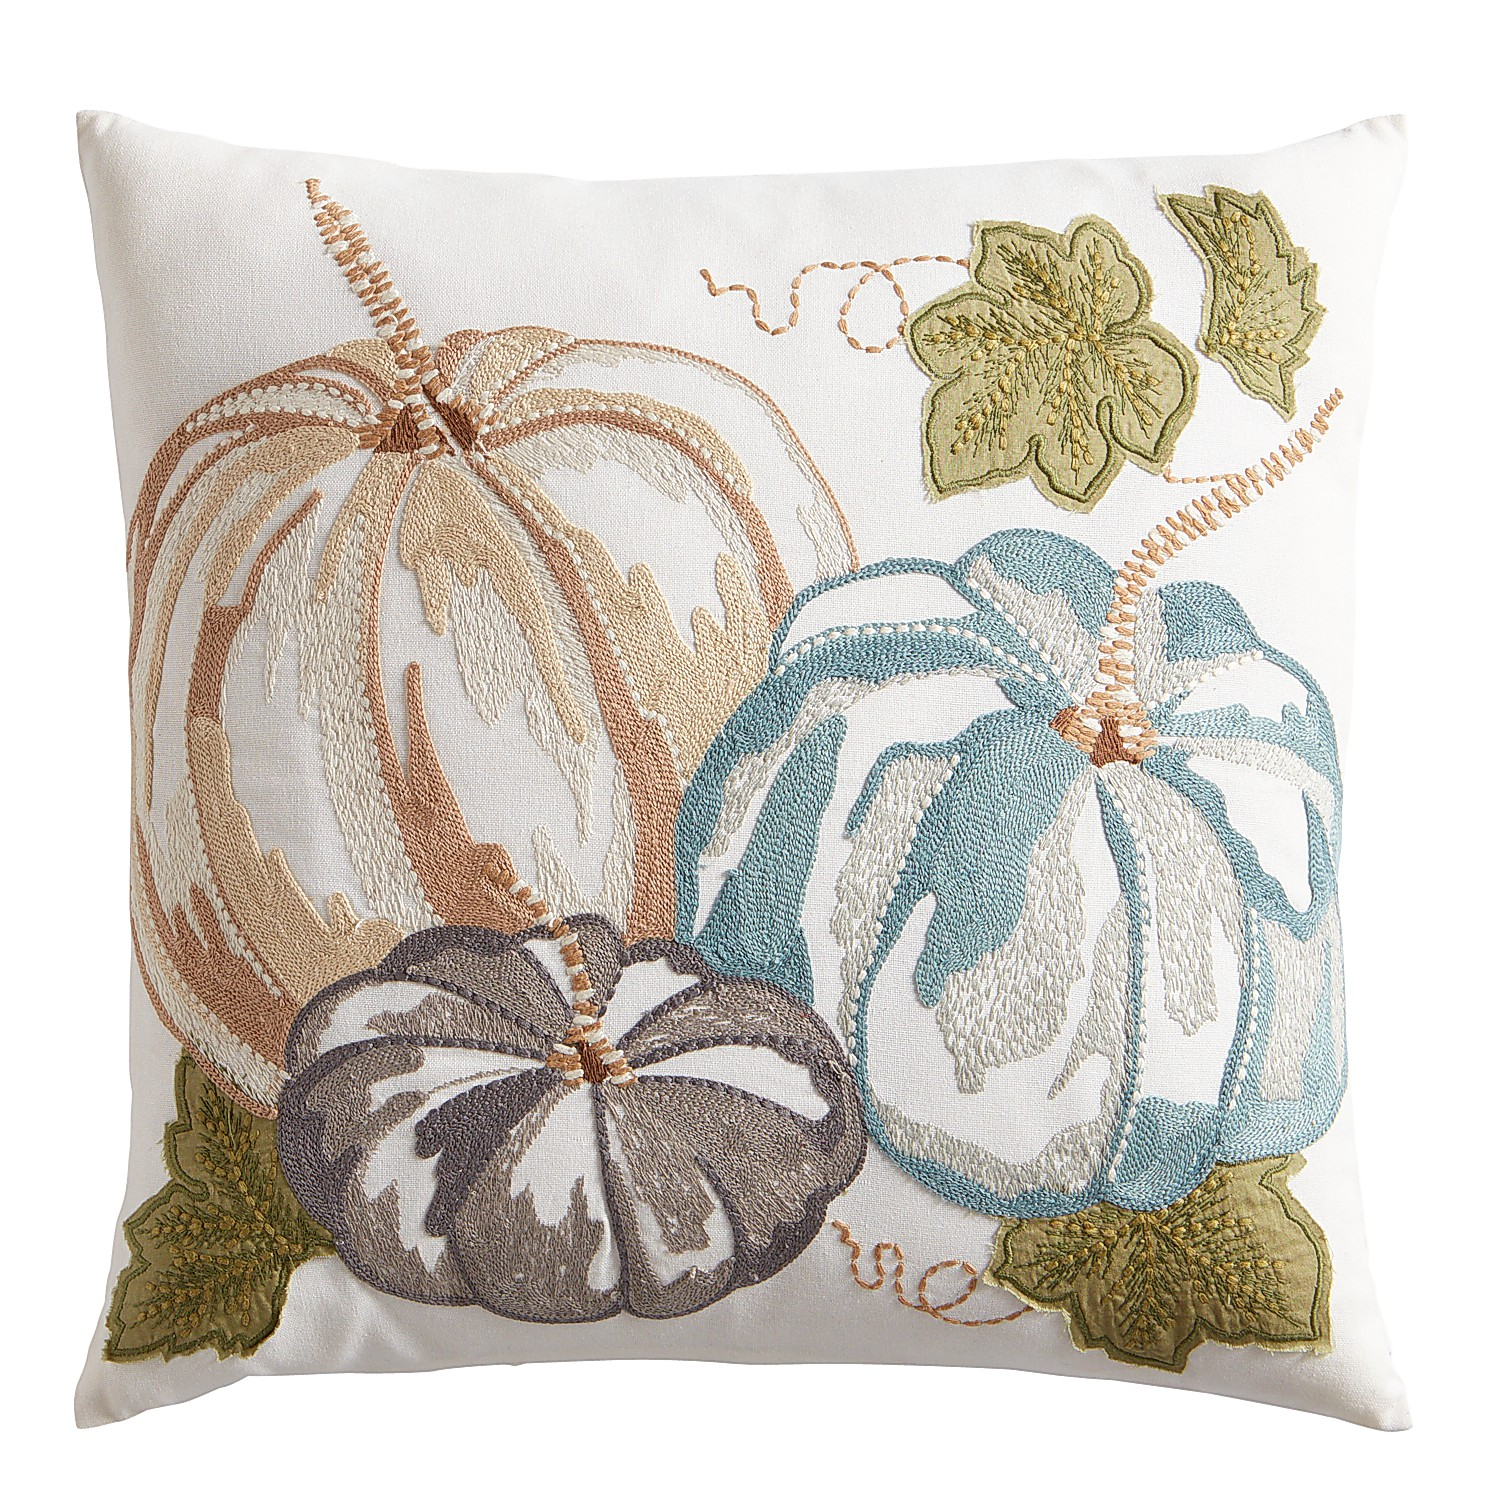 Embroidered Autumn Bliss Pumpkin Pillow